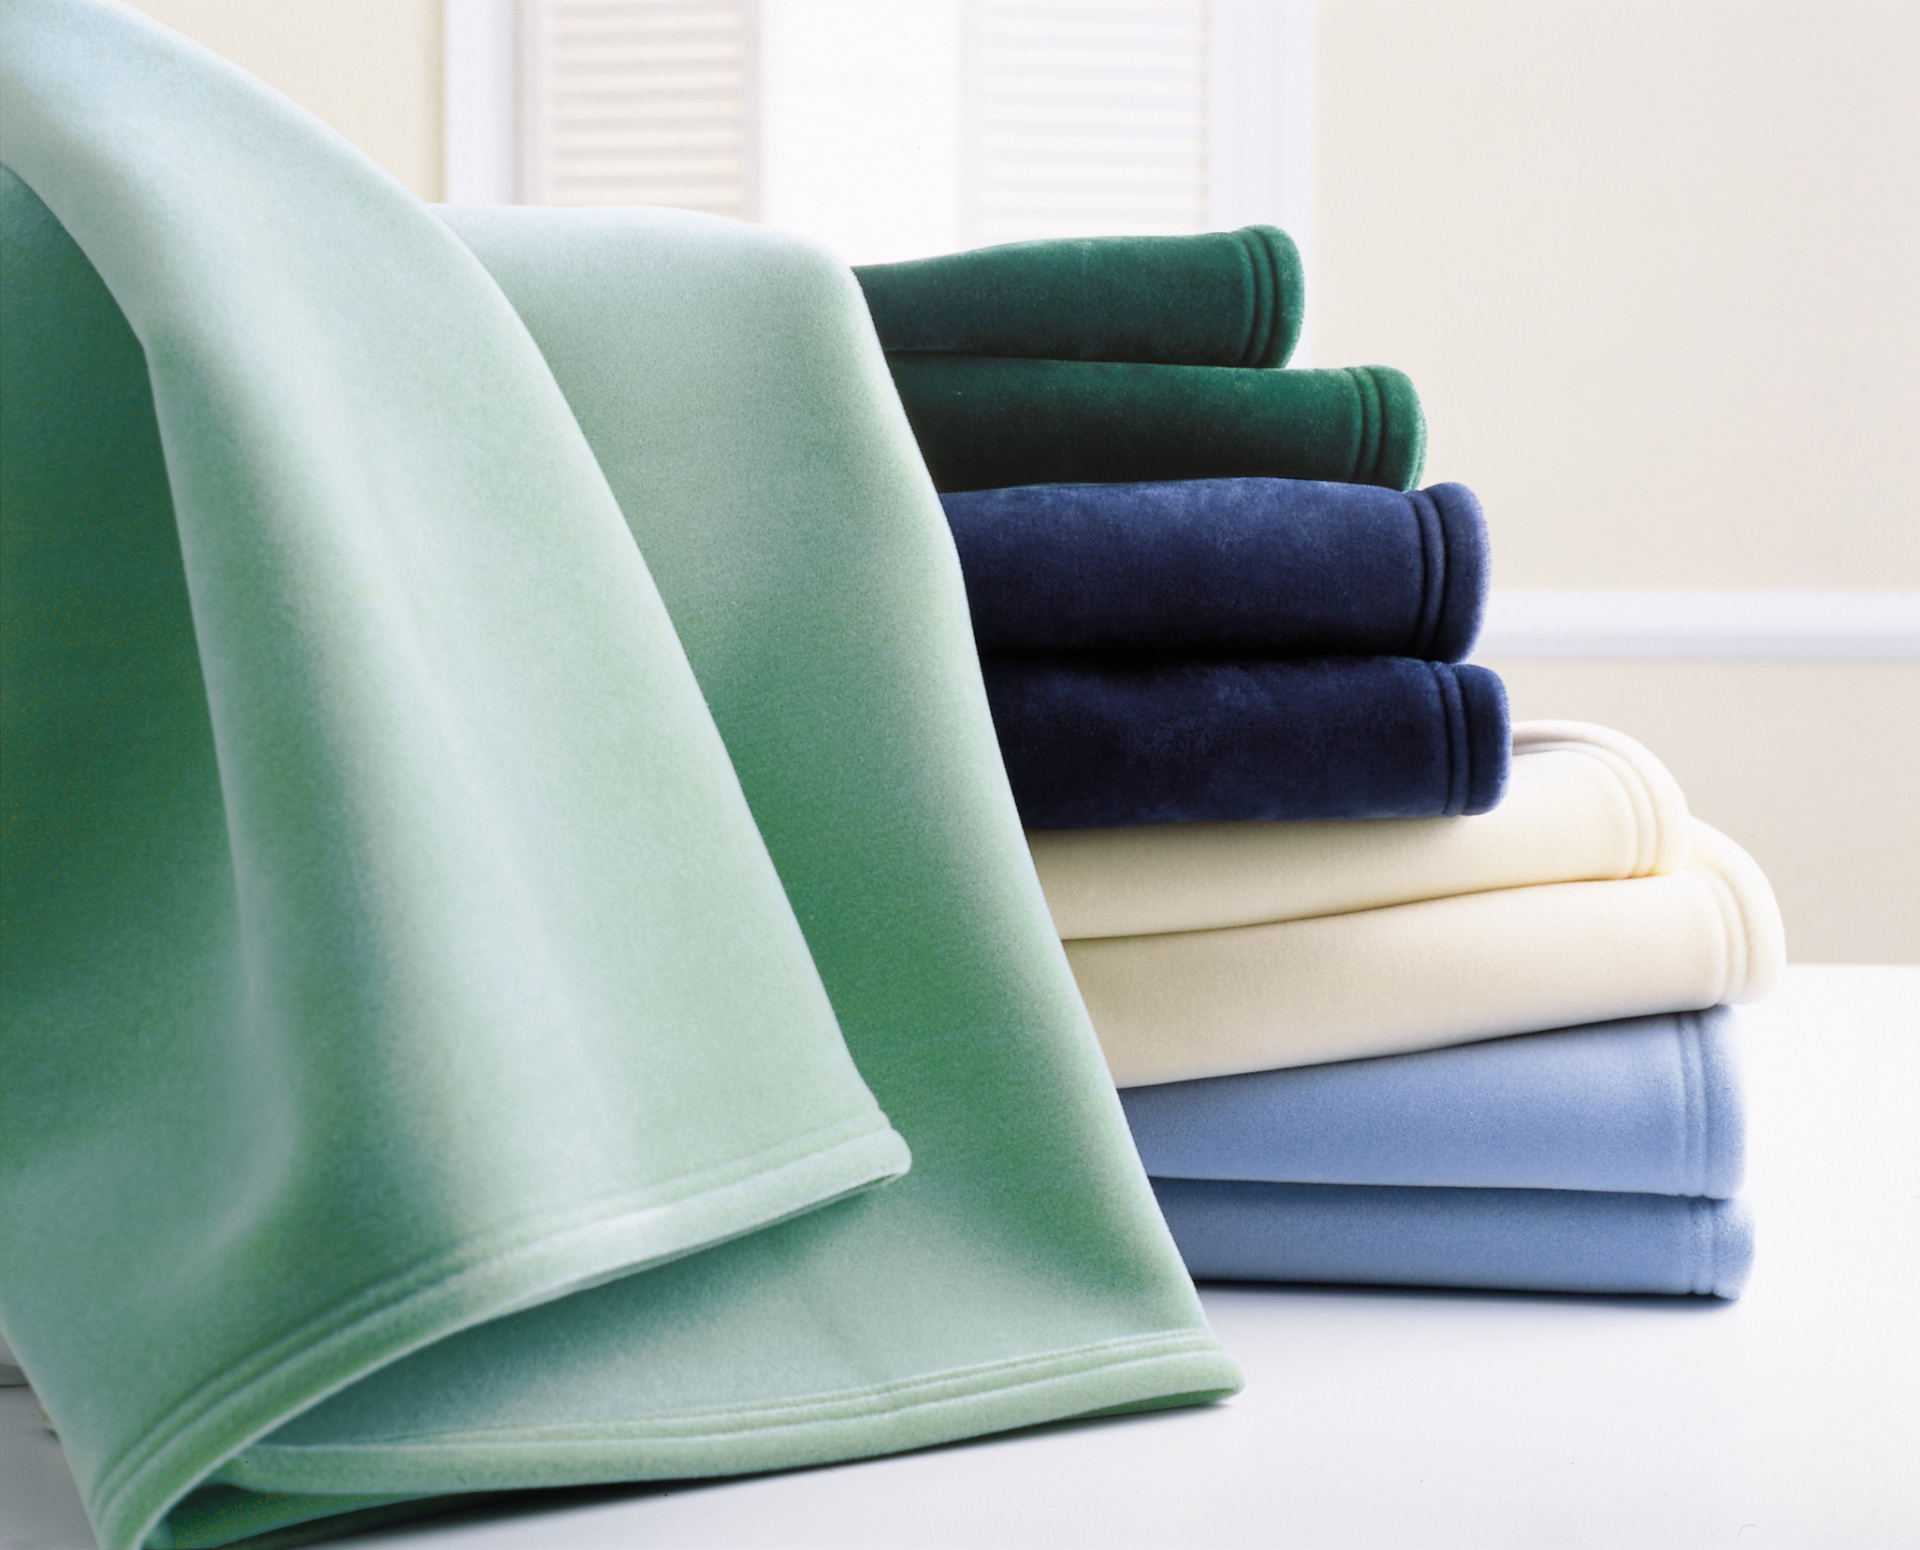 Vellux Classic Blankets